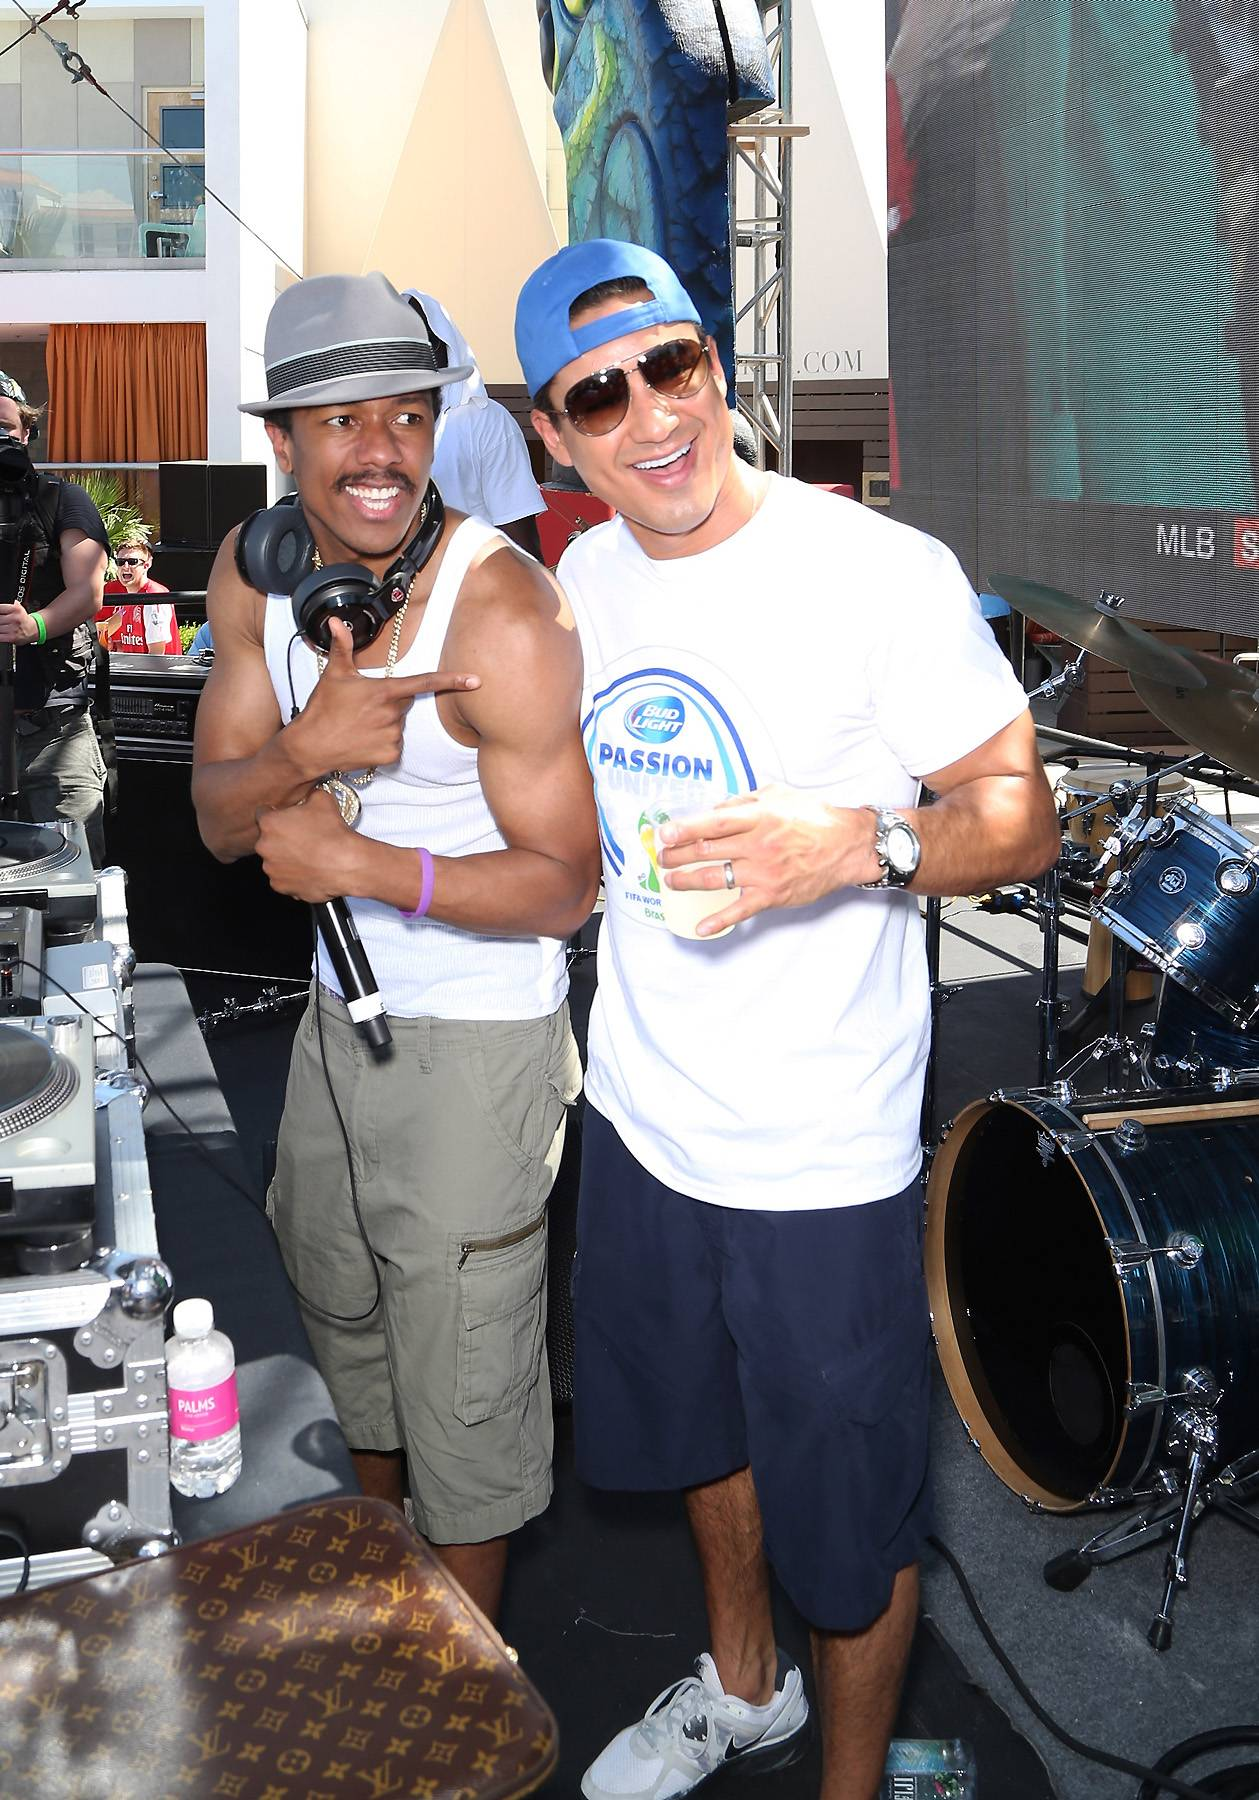 071414-celebs-out-nick-cannon-mario-lopez.jpg